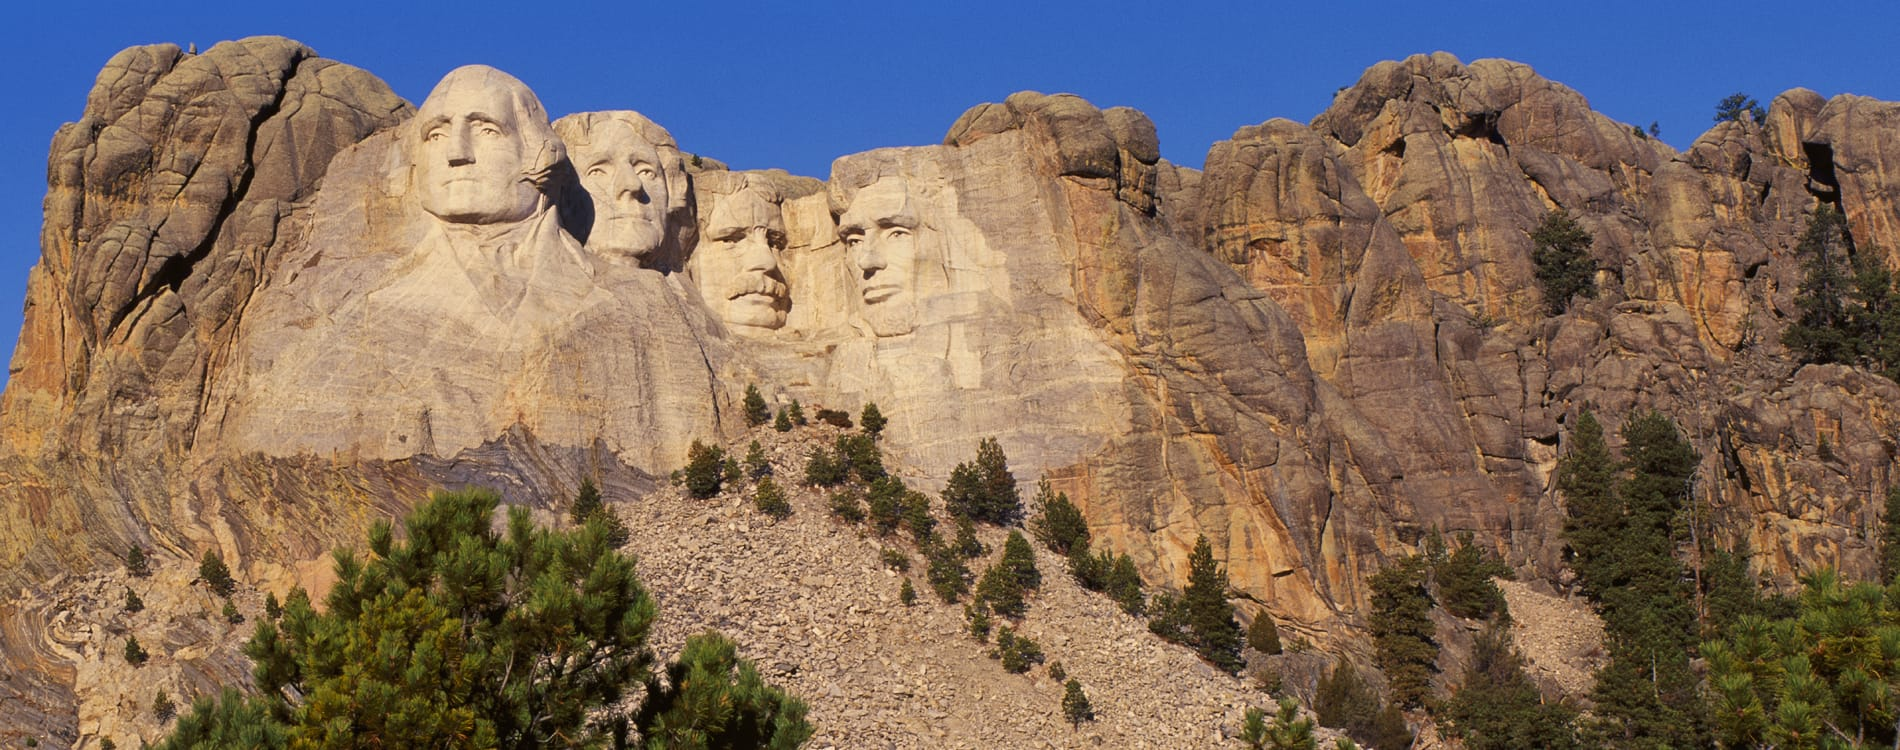 Black Hills - Mount Rushmore